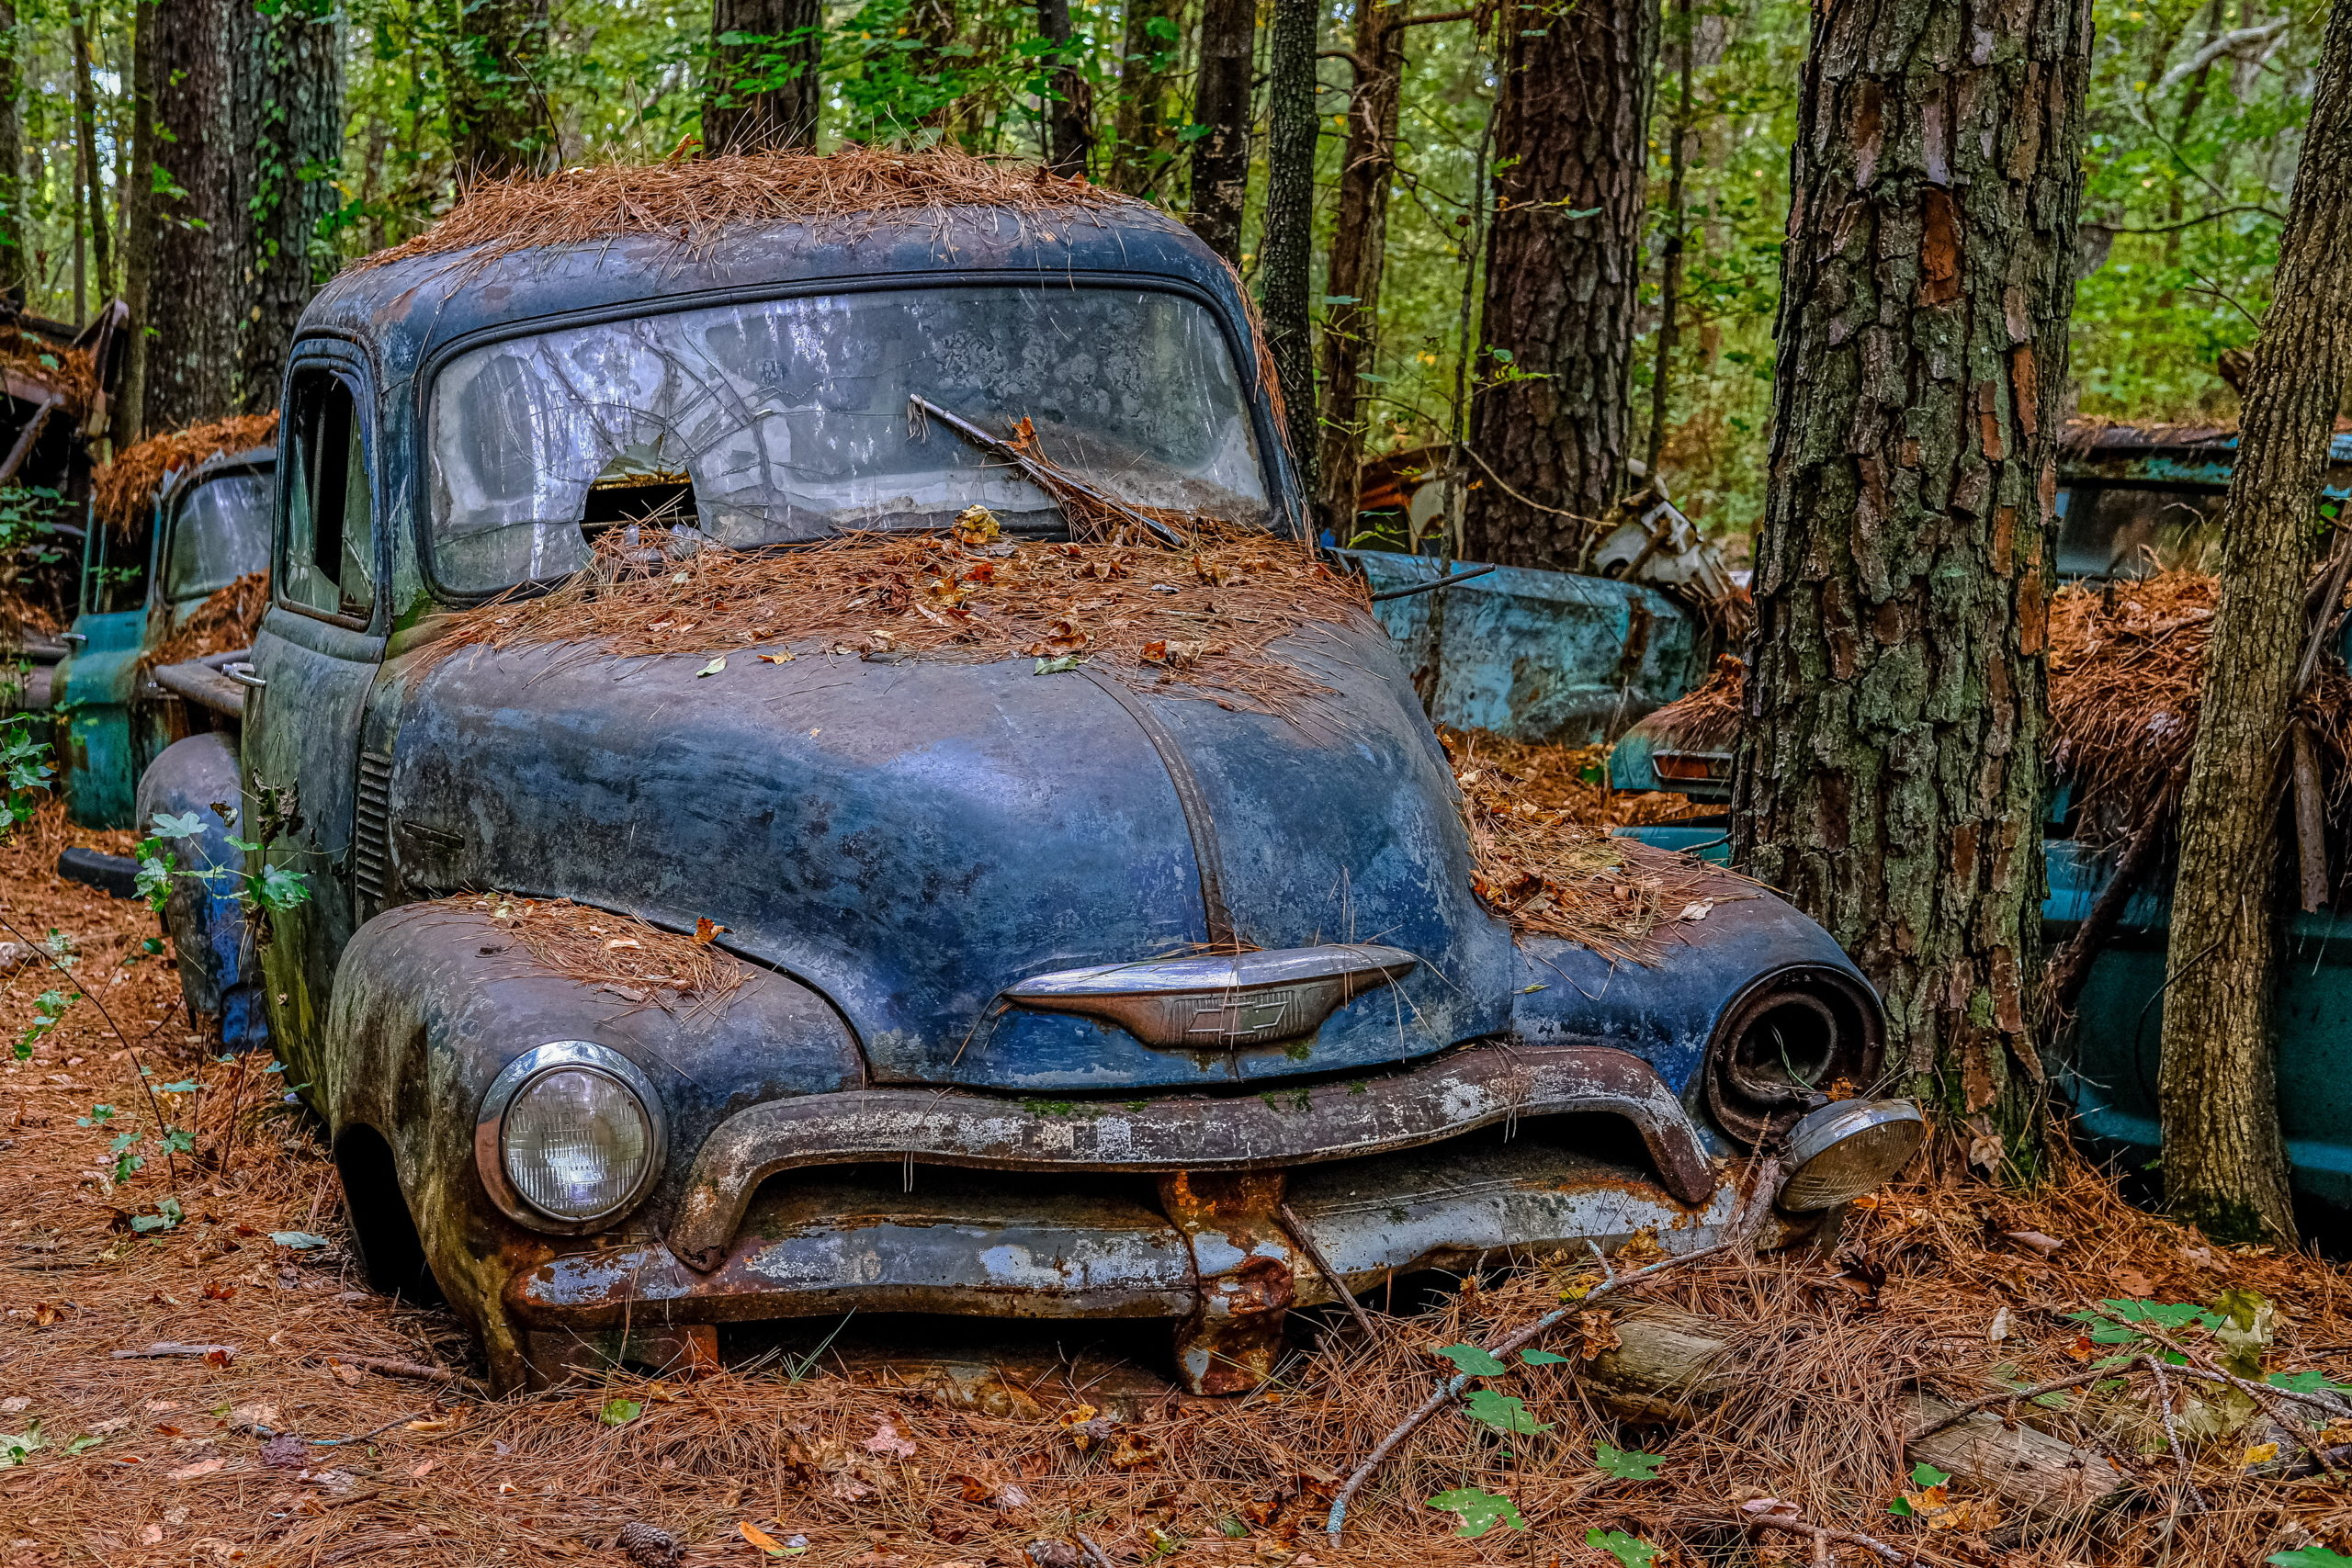 Cash For Junk Cars Wilmington, NC — Get an Offer for Your Scrap Car Now!